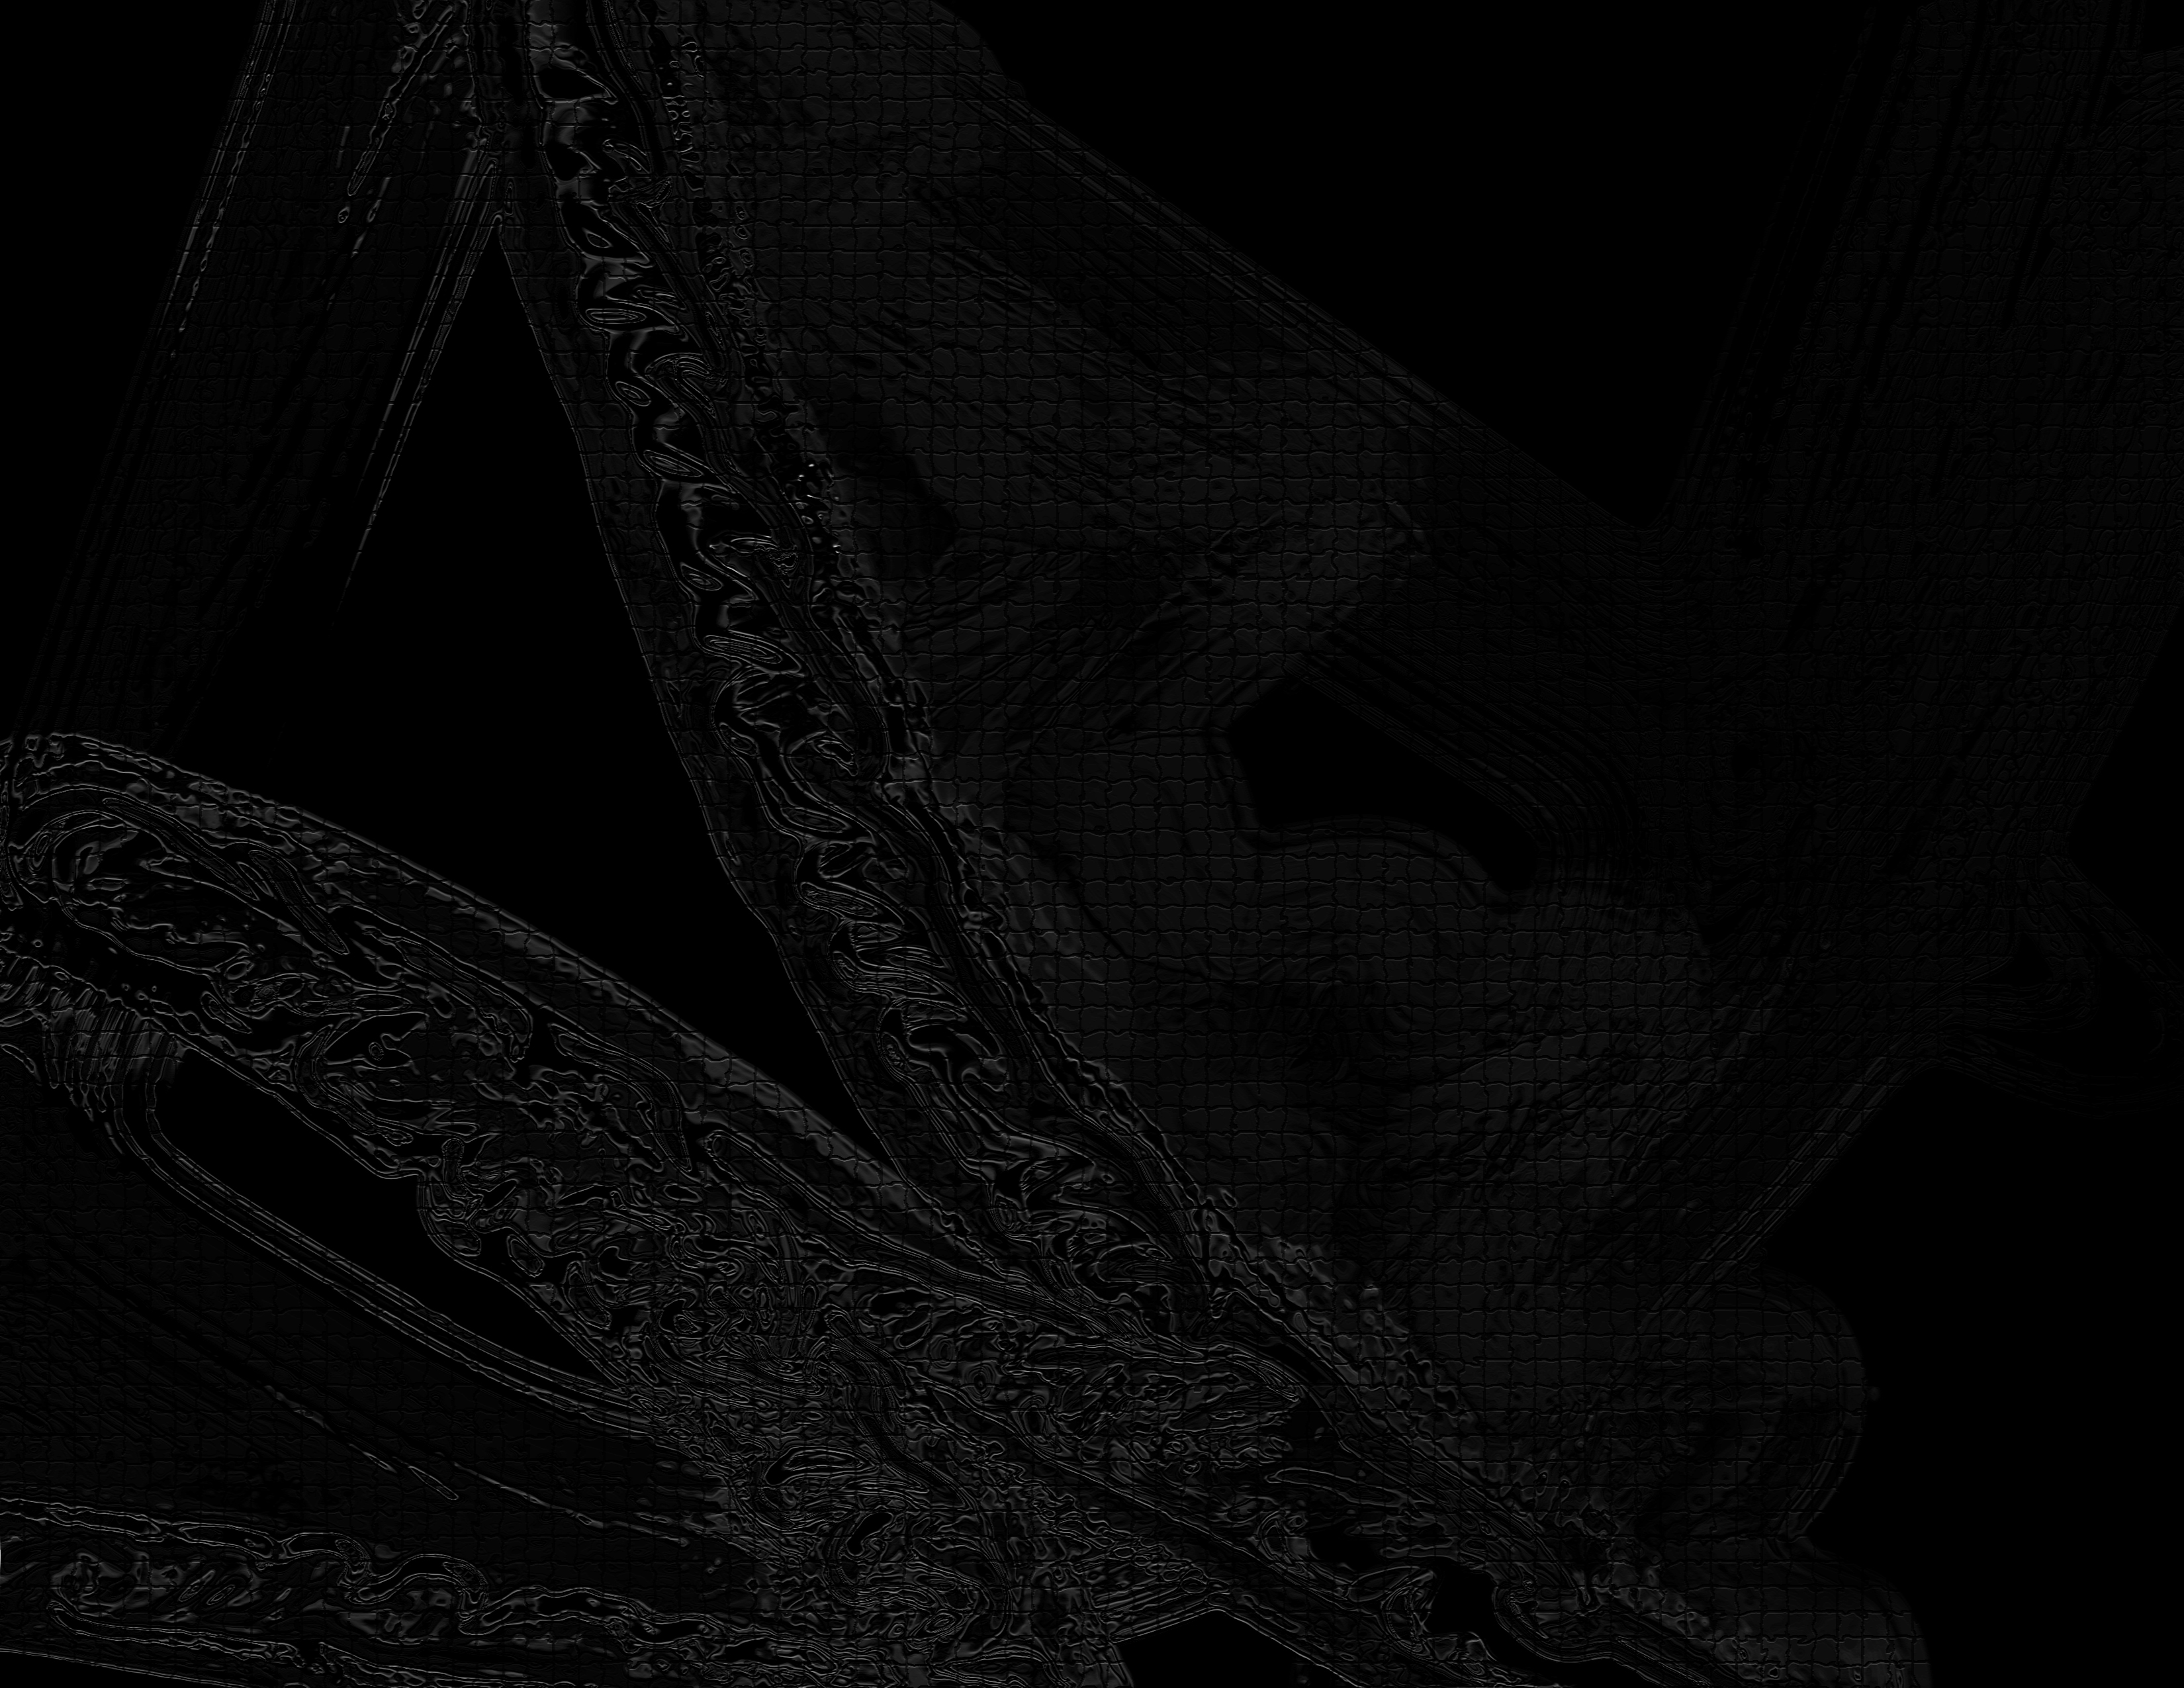 Abstract Black Backgrounds Black Background Hd Black ...